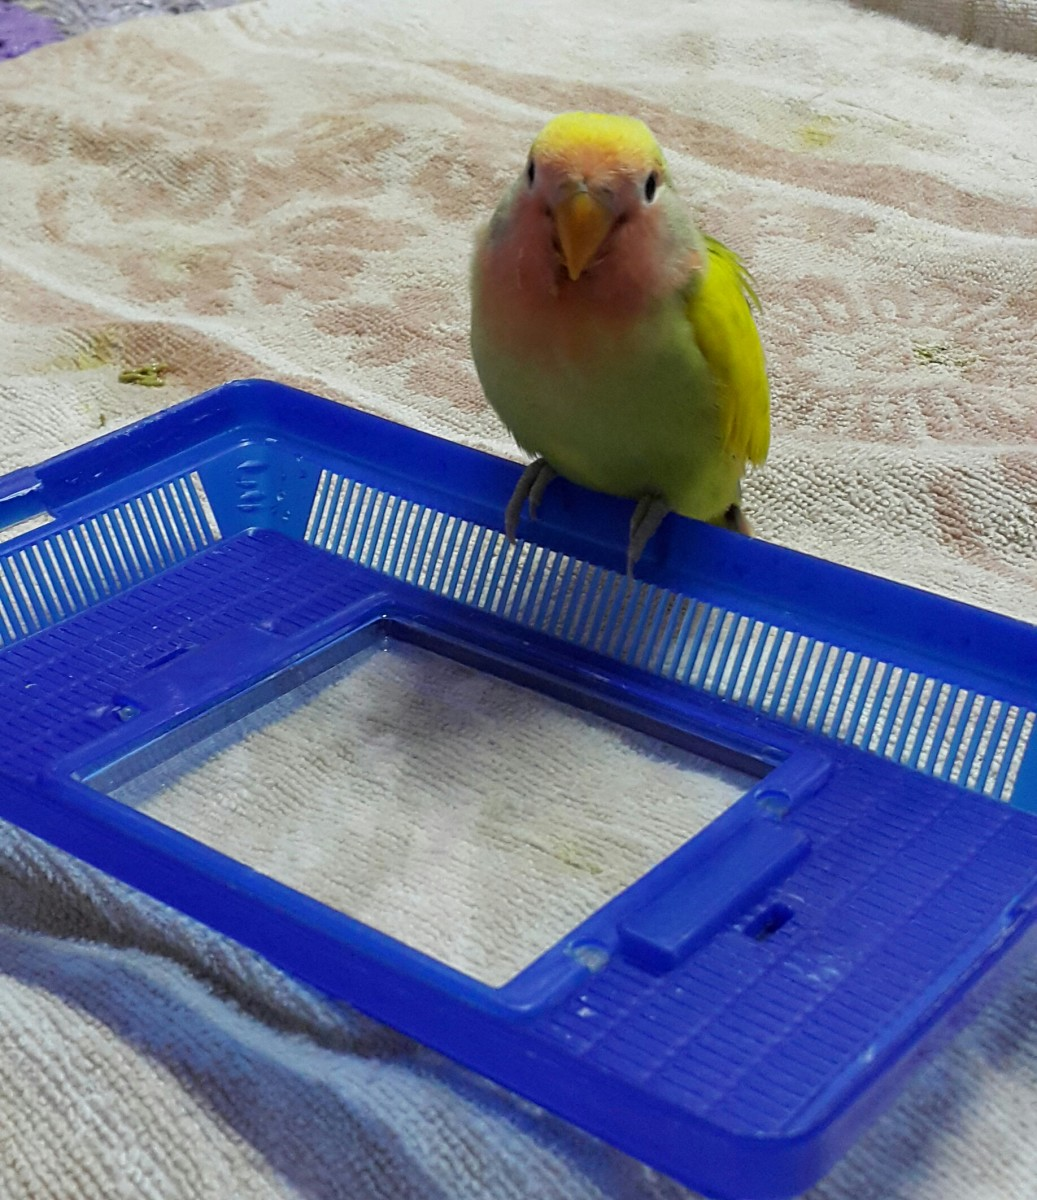 Adorable, isn't he? Mumu is my baby lovebird. He is waiting to be fed.